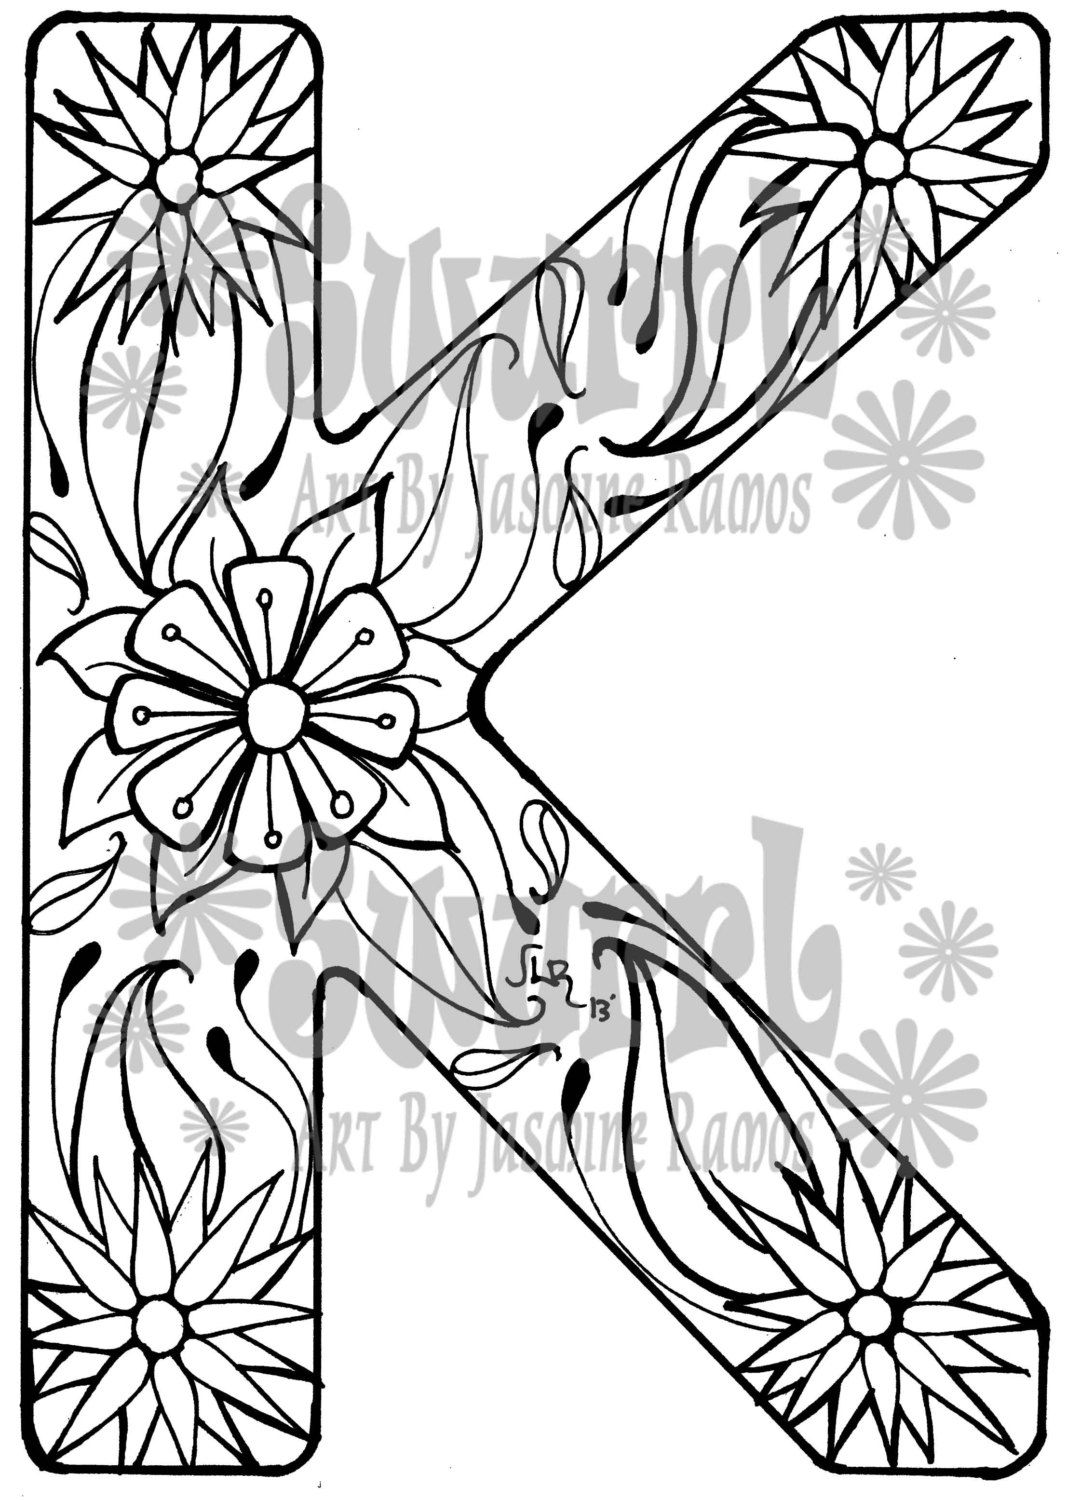 Letter K Coloring Pages Adult Name Monograms Pinterest